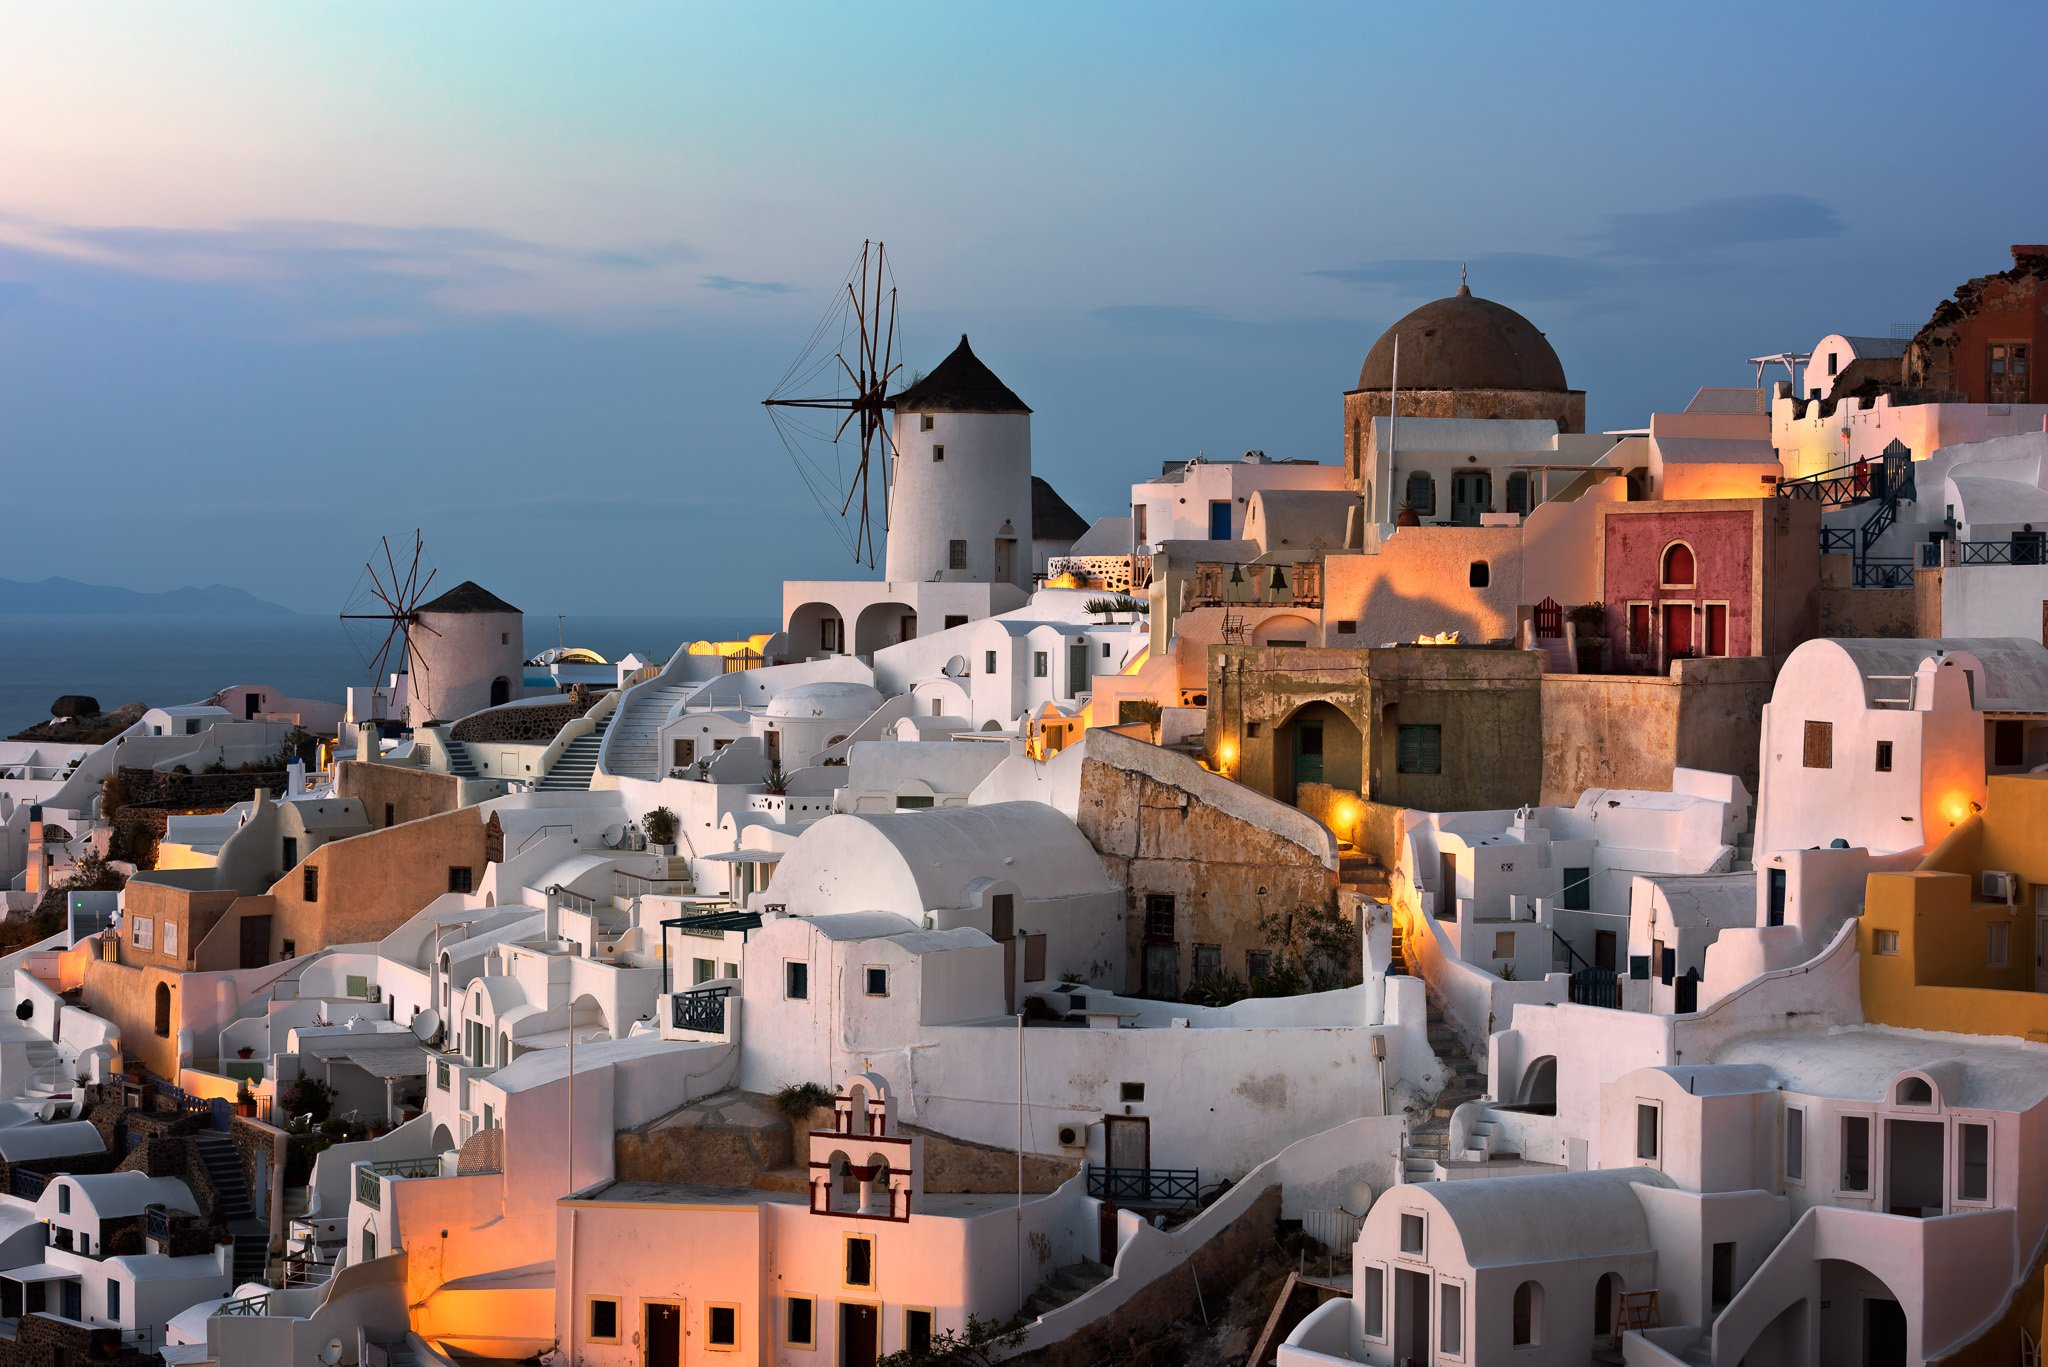 architecture, church, cityscape, cyclades, greece, island, mill, night, oia, resort, santorini, skyline, sunset, thera, thira, town, travel, twilight, urban, village, volcano, white, windmill, anshar